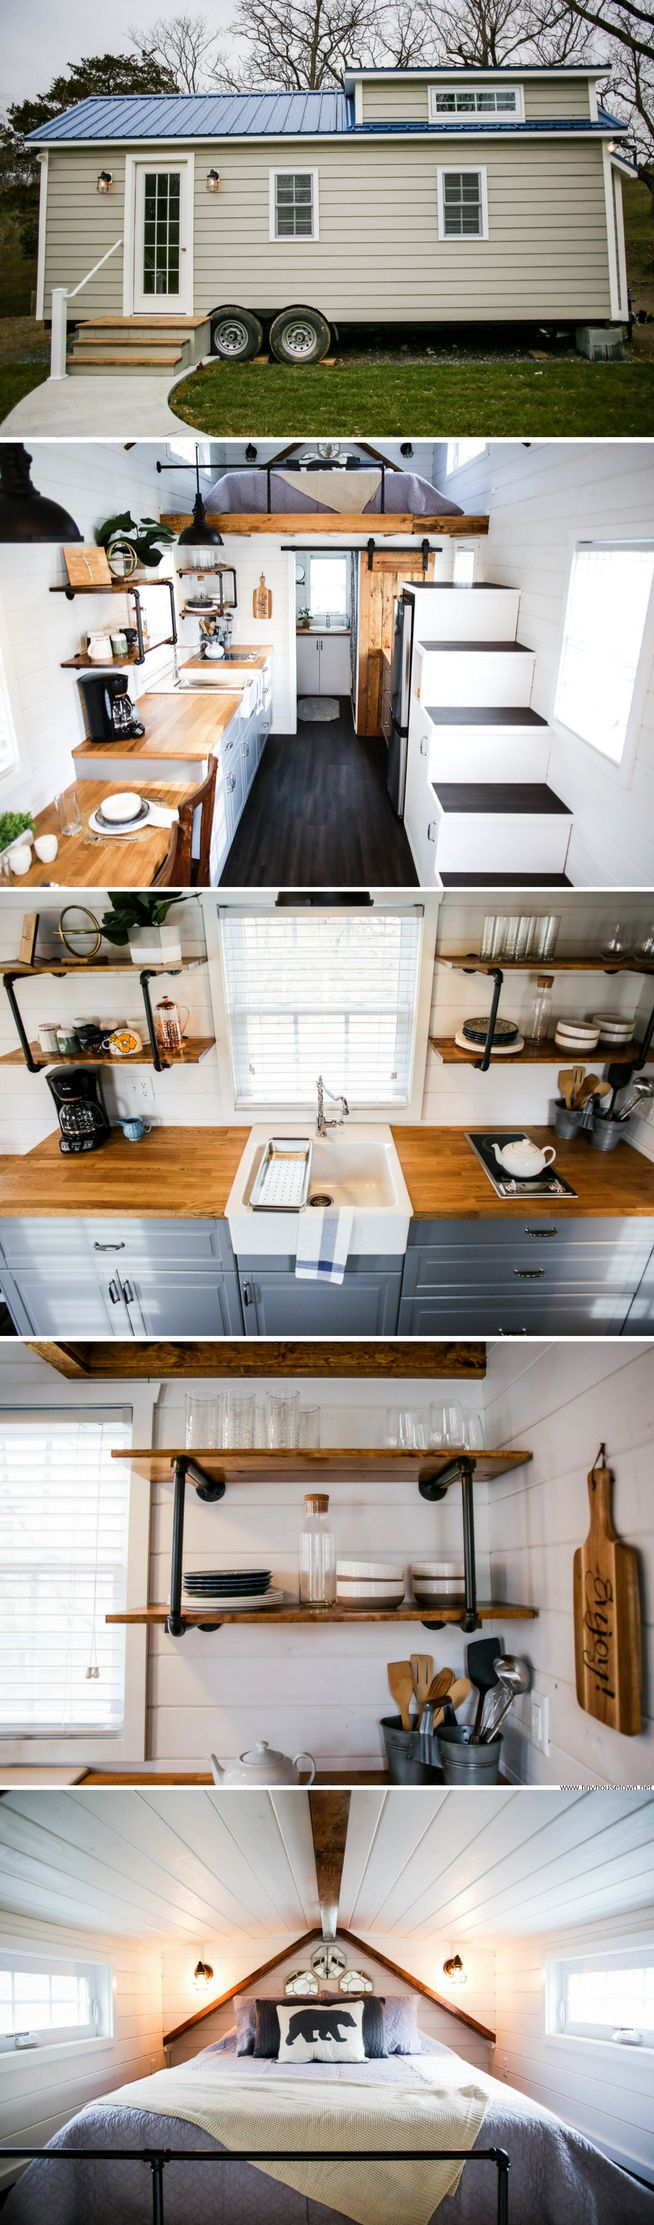 The Modern Farmhouse from Liberation Tiny Homes